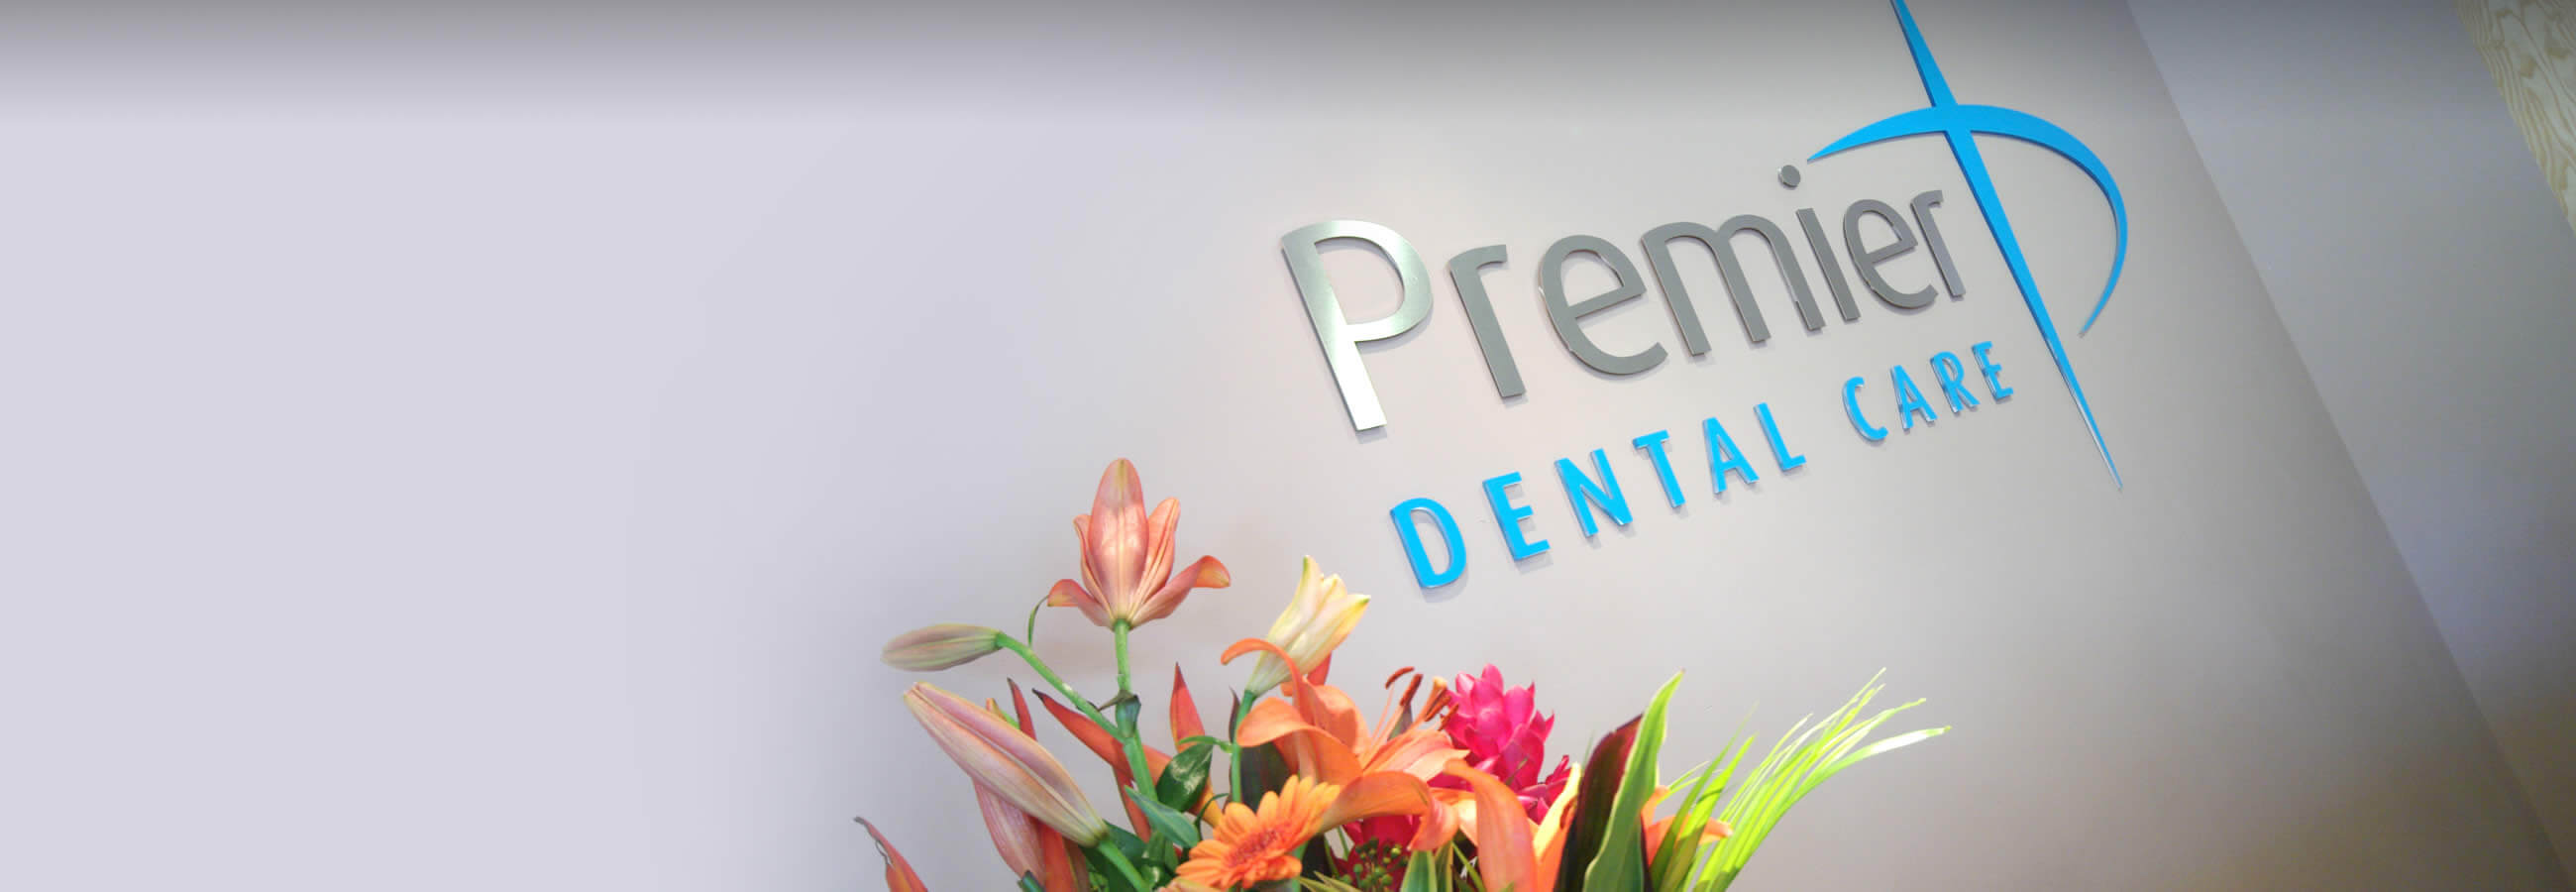 Fees and Finance for Premier Dental Care in Walsall